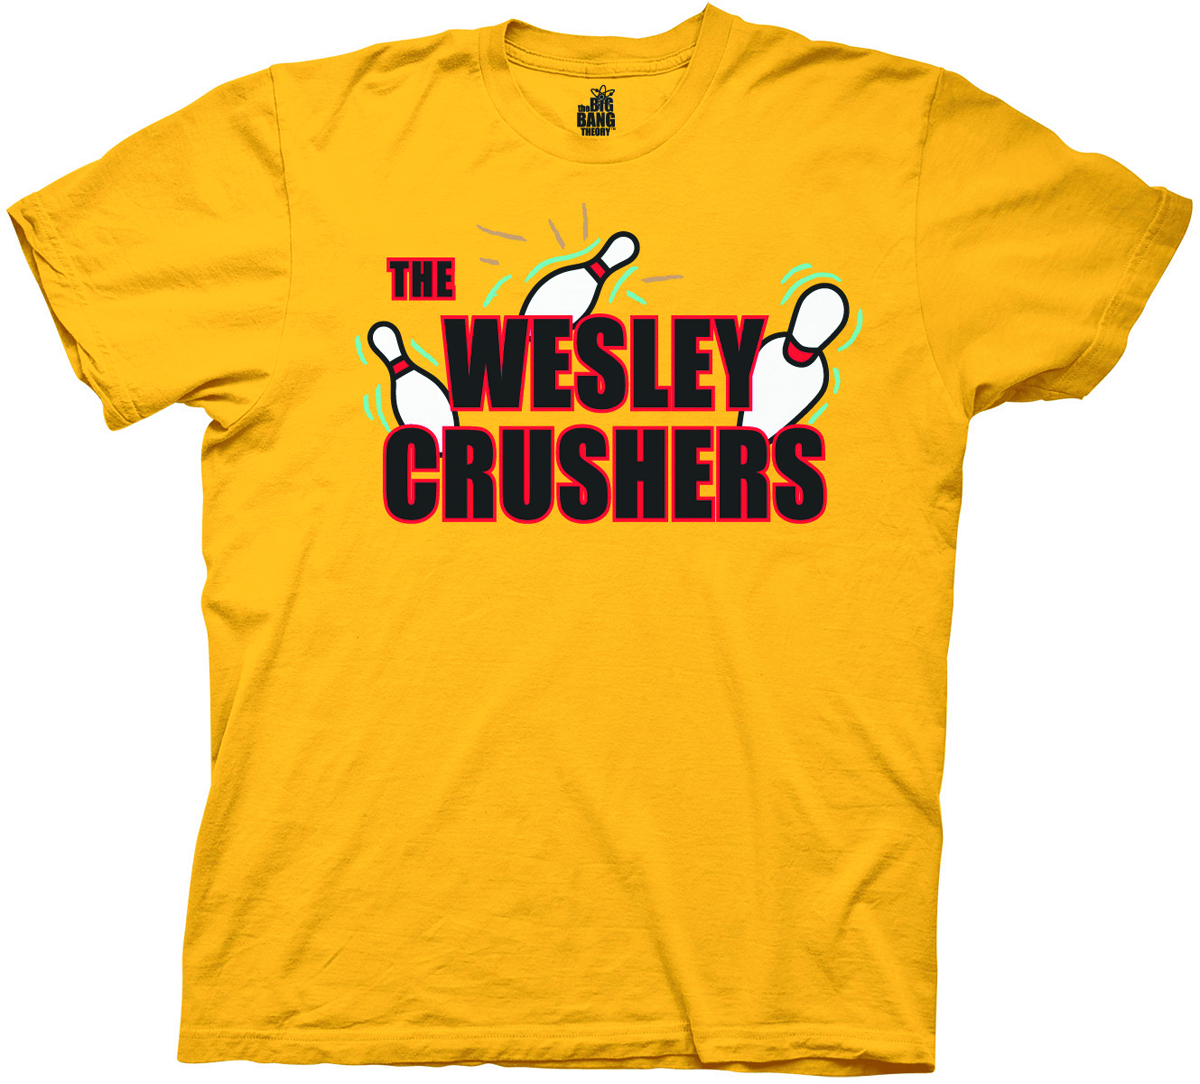 BBT WESLEY CRUSHERS YELLOW T/S MED